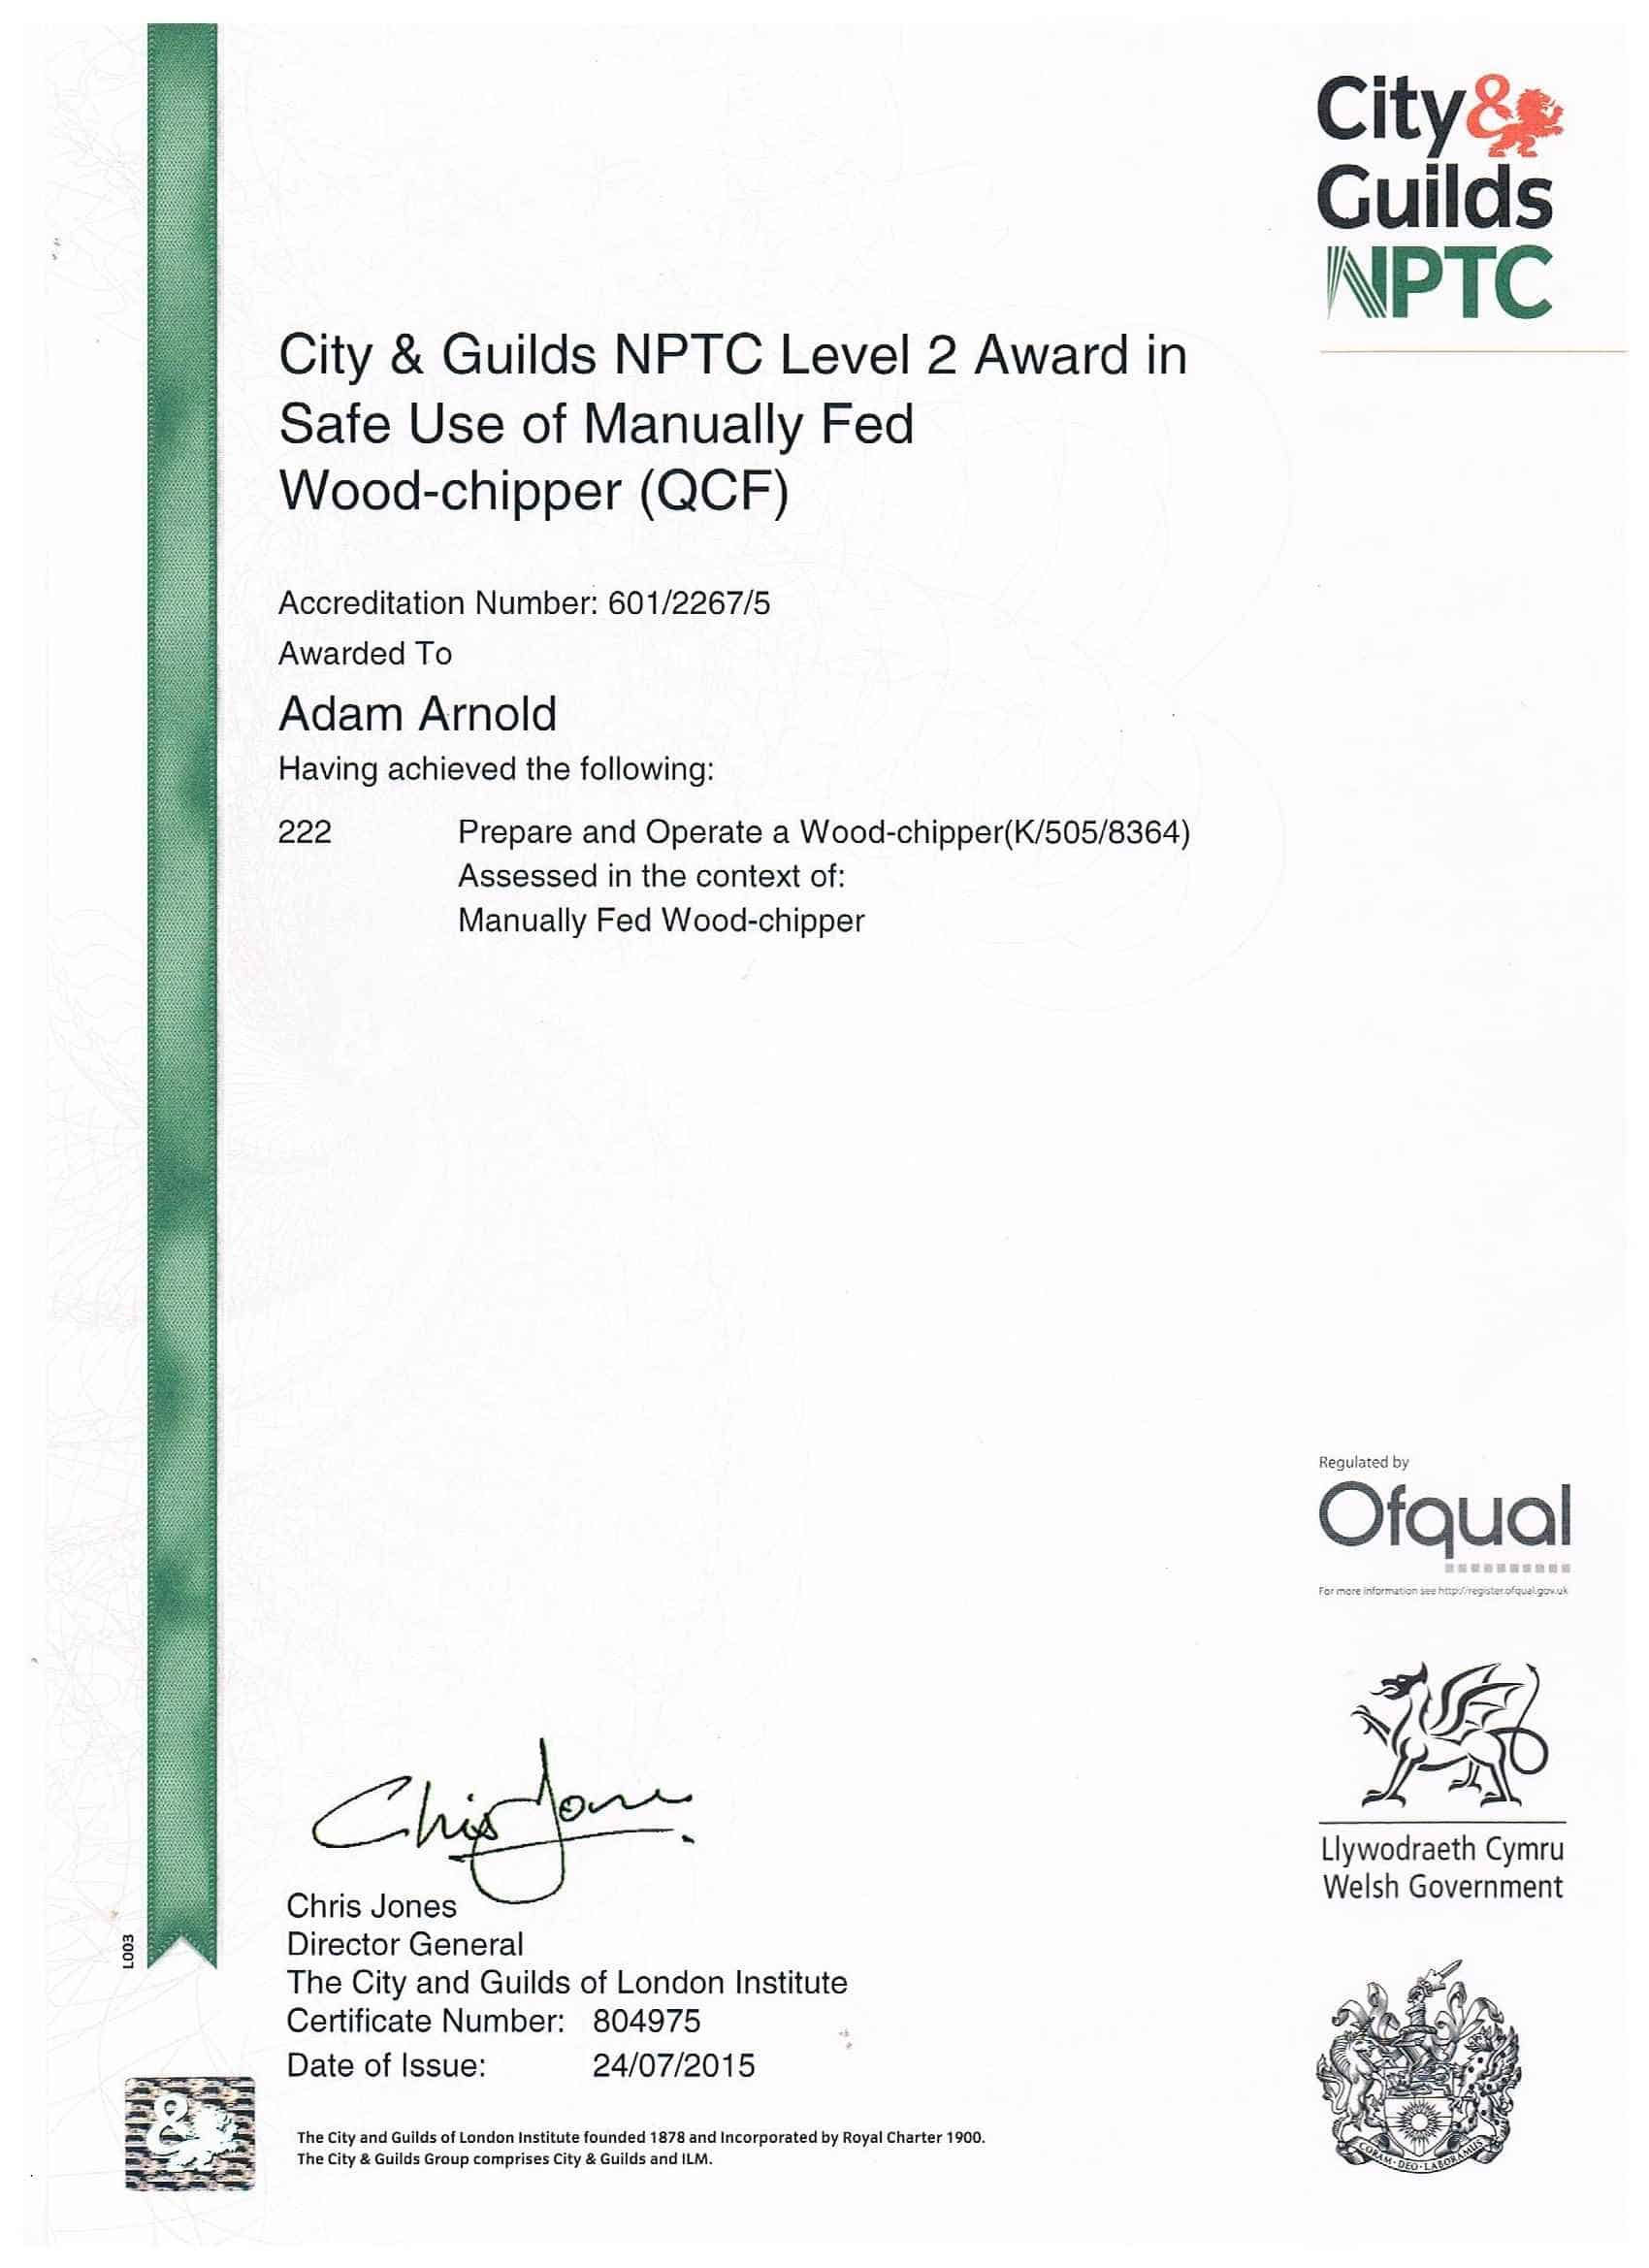 City and guilds certificate template gallery templates example first aid certificate template free blank printable certificates surrey tree services unit 222 nptc l2 safe xflitez Choice Image